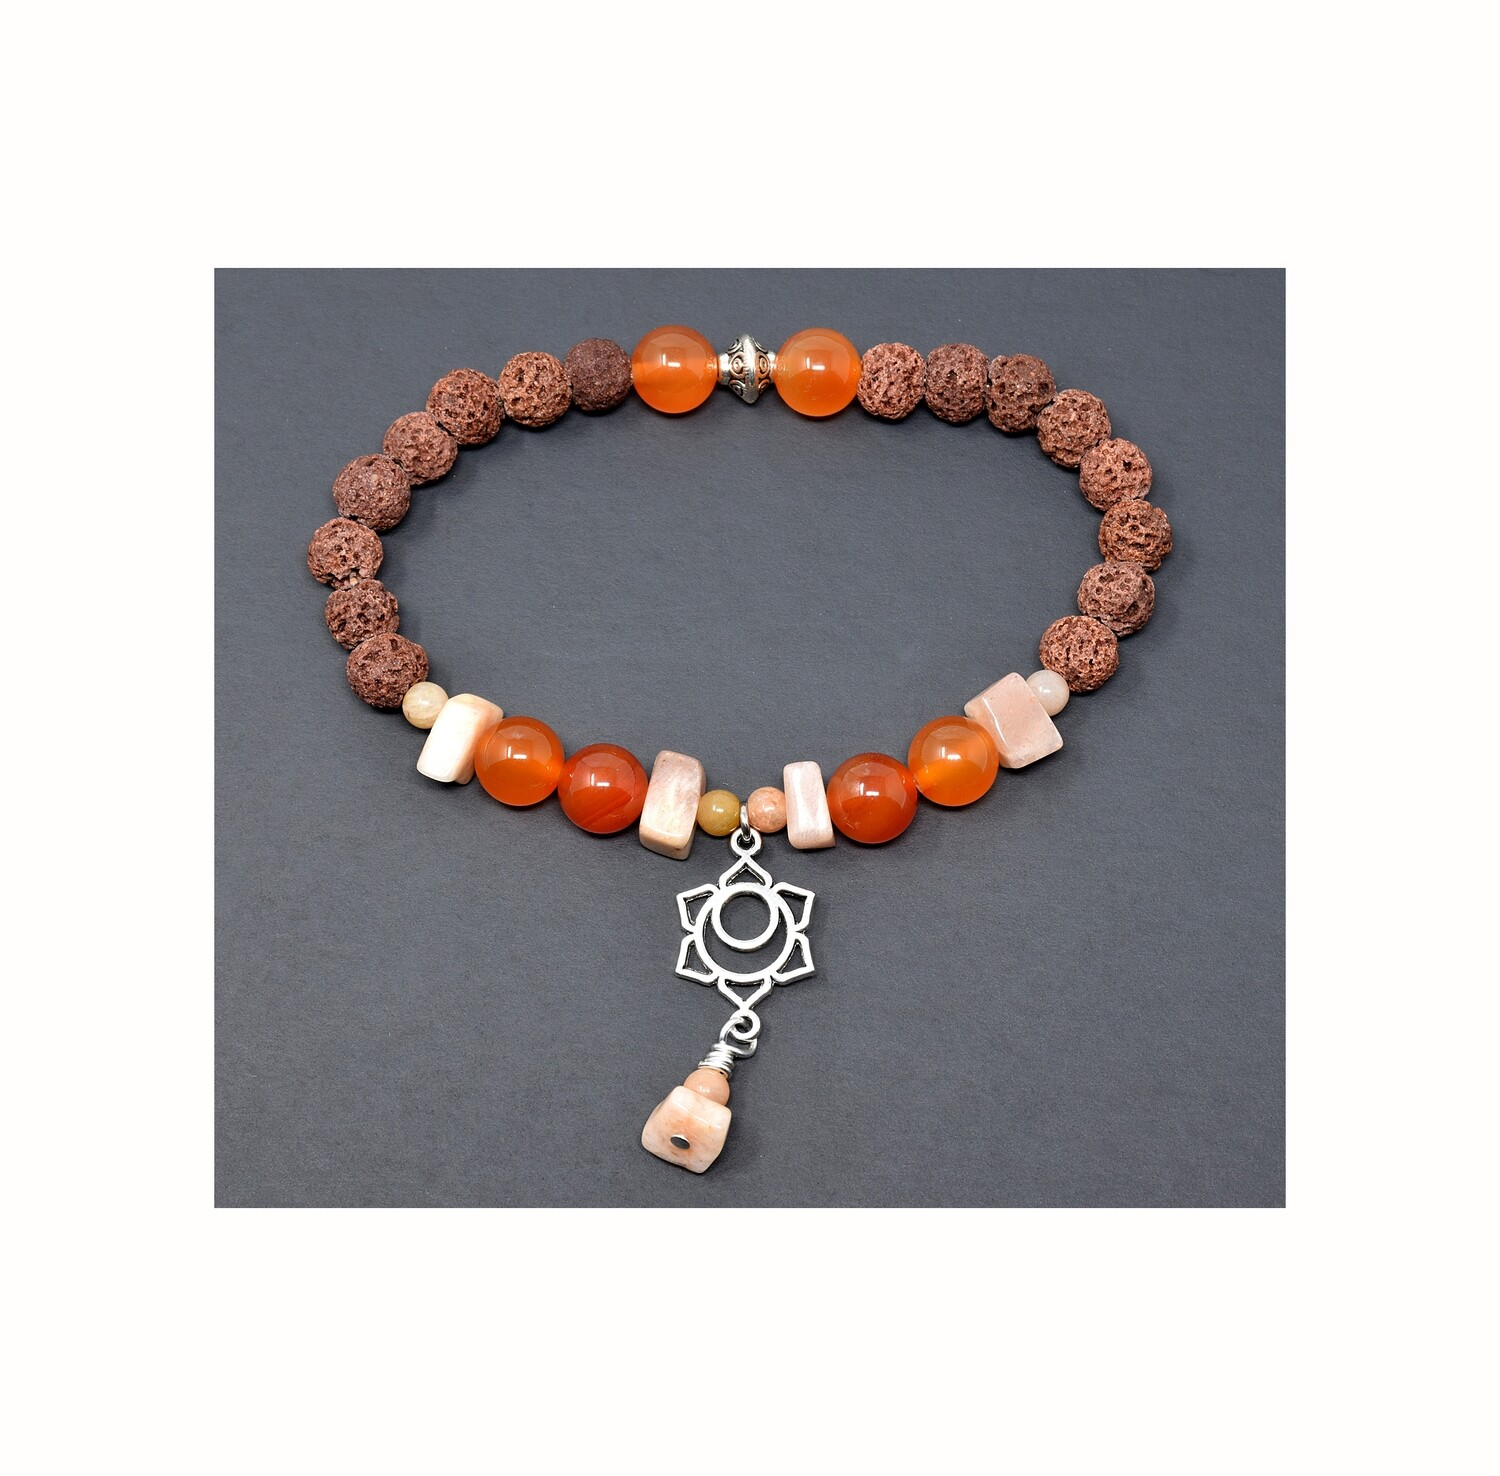 "Reiki Charged Svadhisthana (Sacral Chakra) Charm Gemstone & Lava Stone Bracelet (Fits wrists up to 6.75"")"